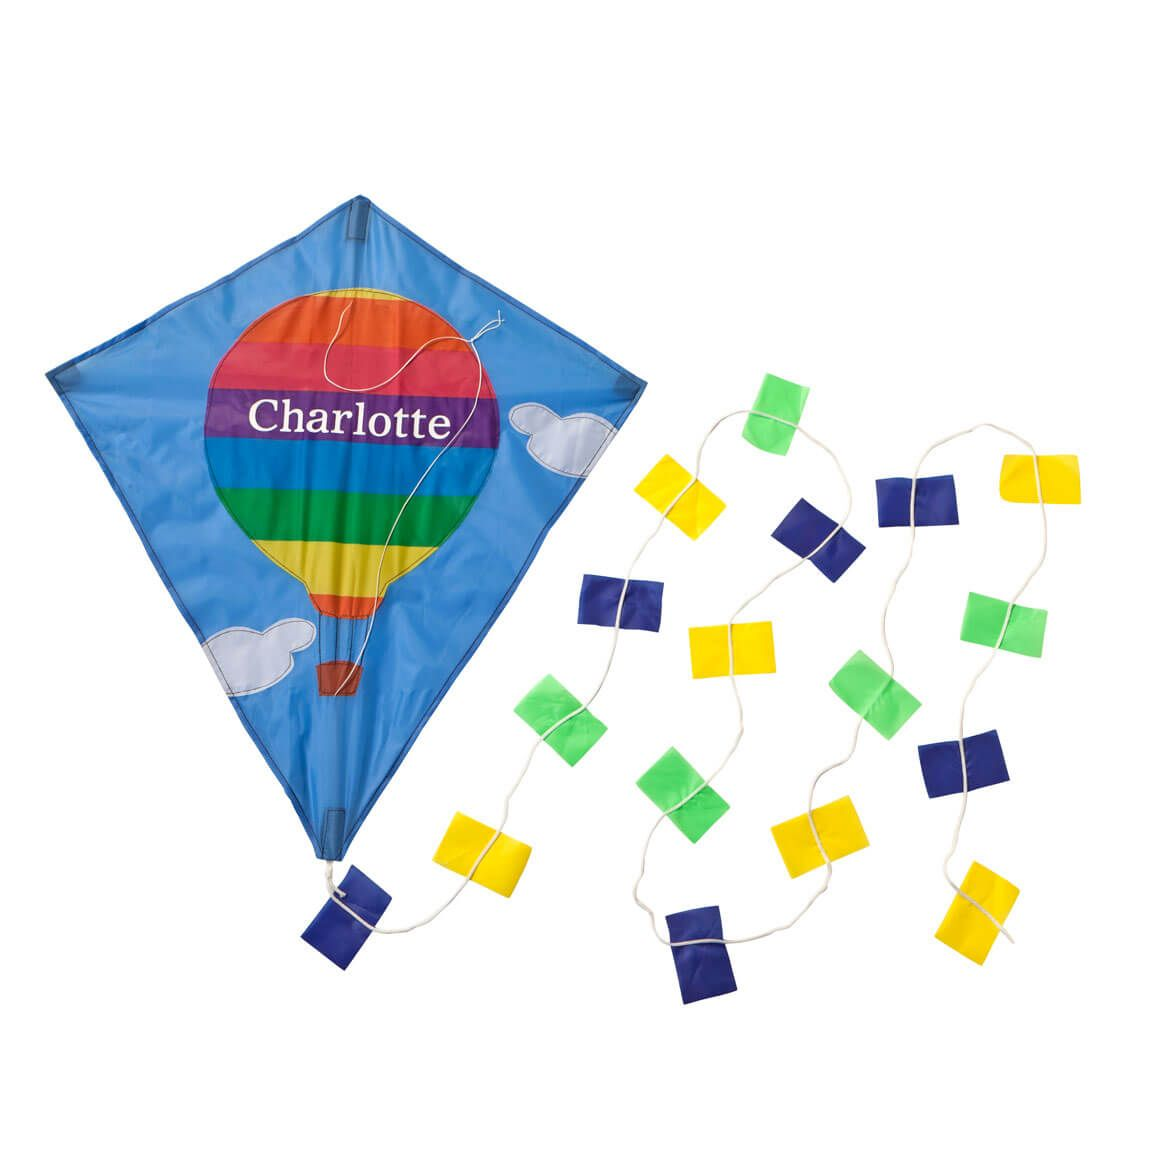 Personalized Hot Air Balloon Kite-358821